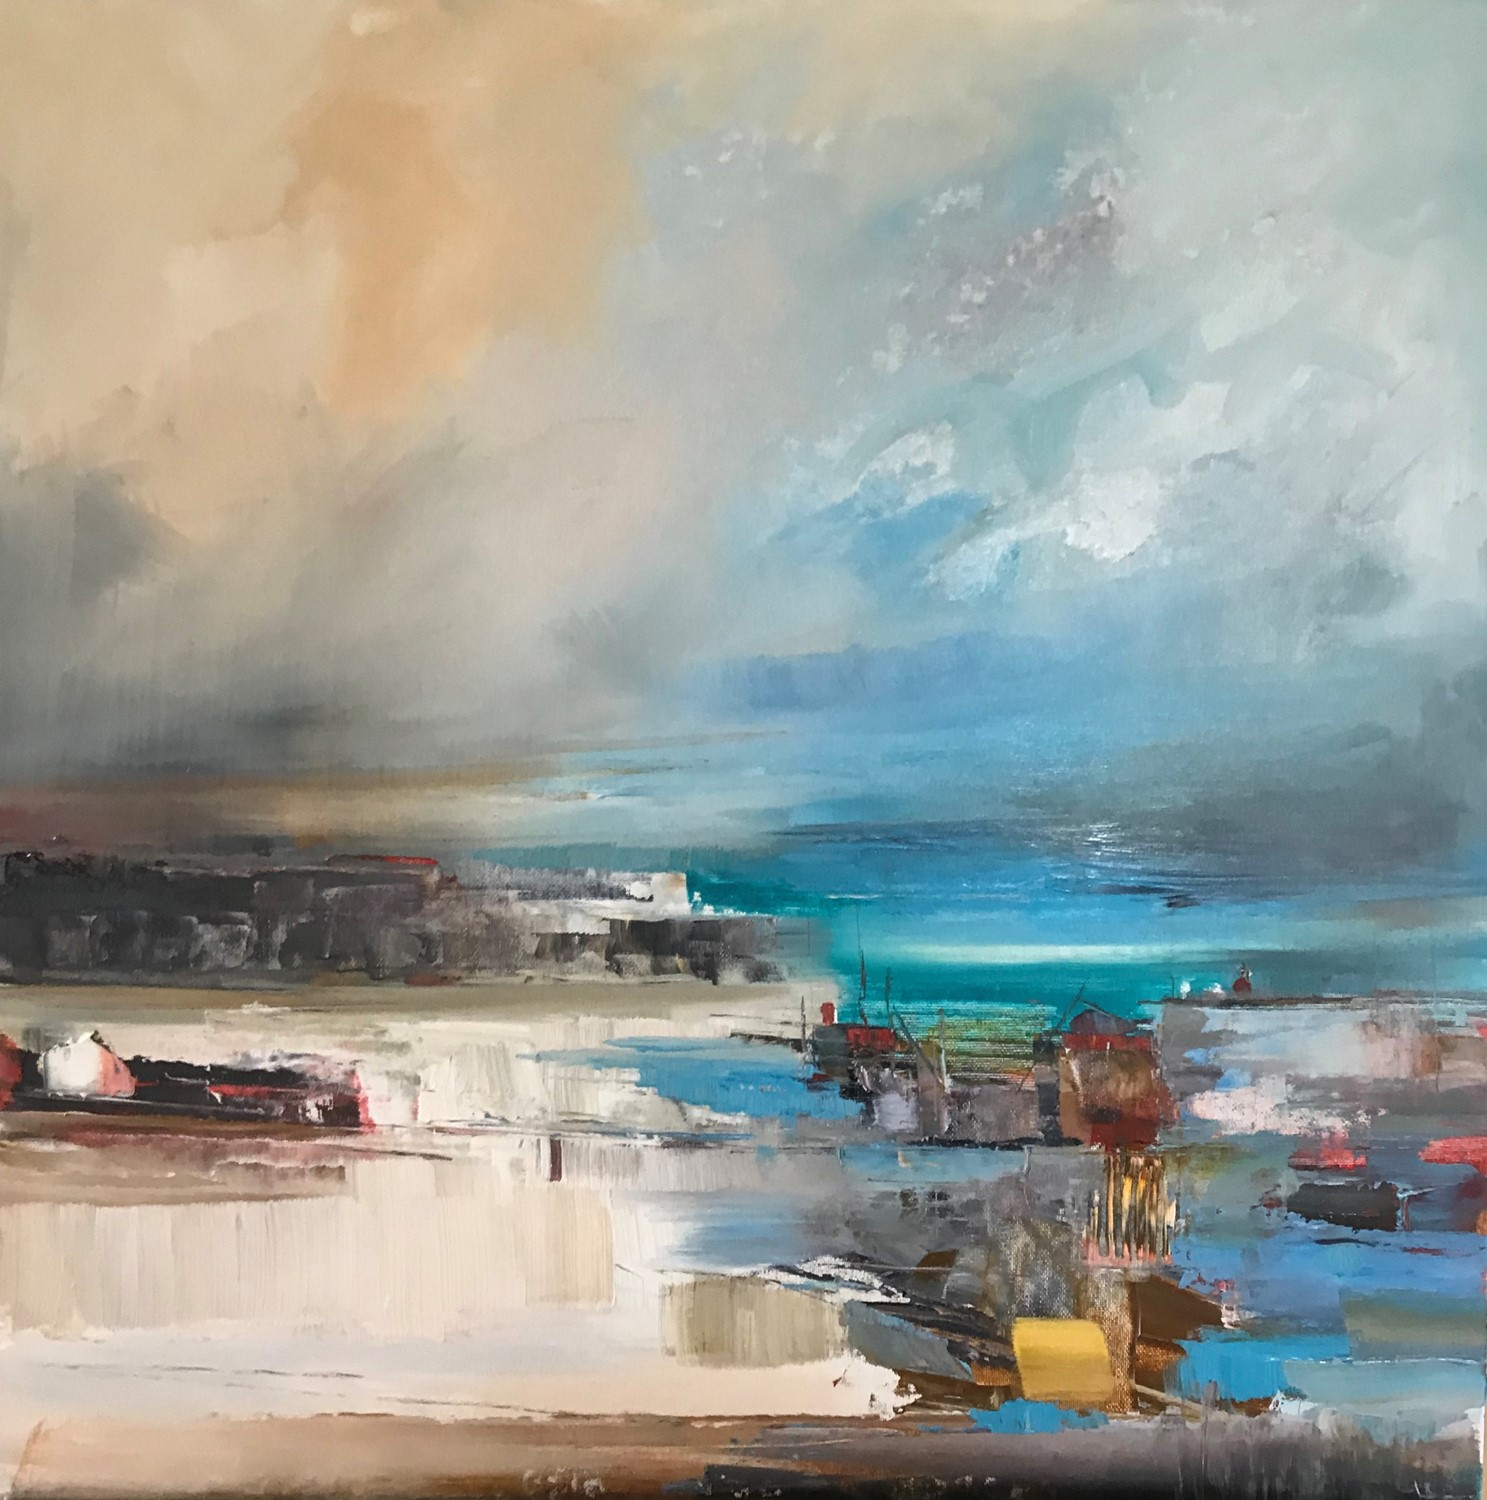 'To Port' by artist Rosanne Barr